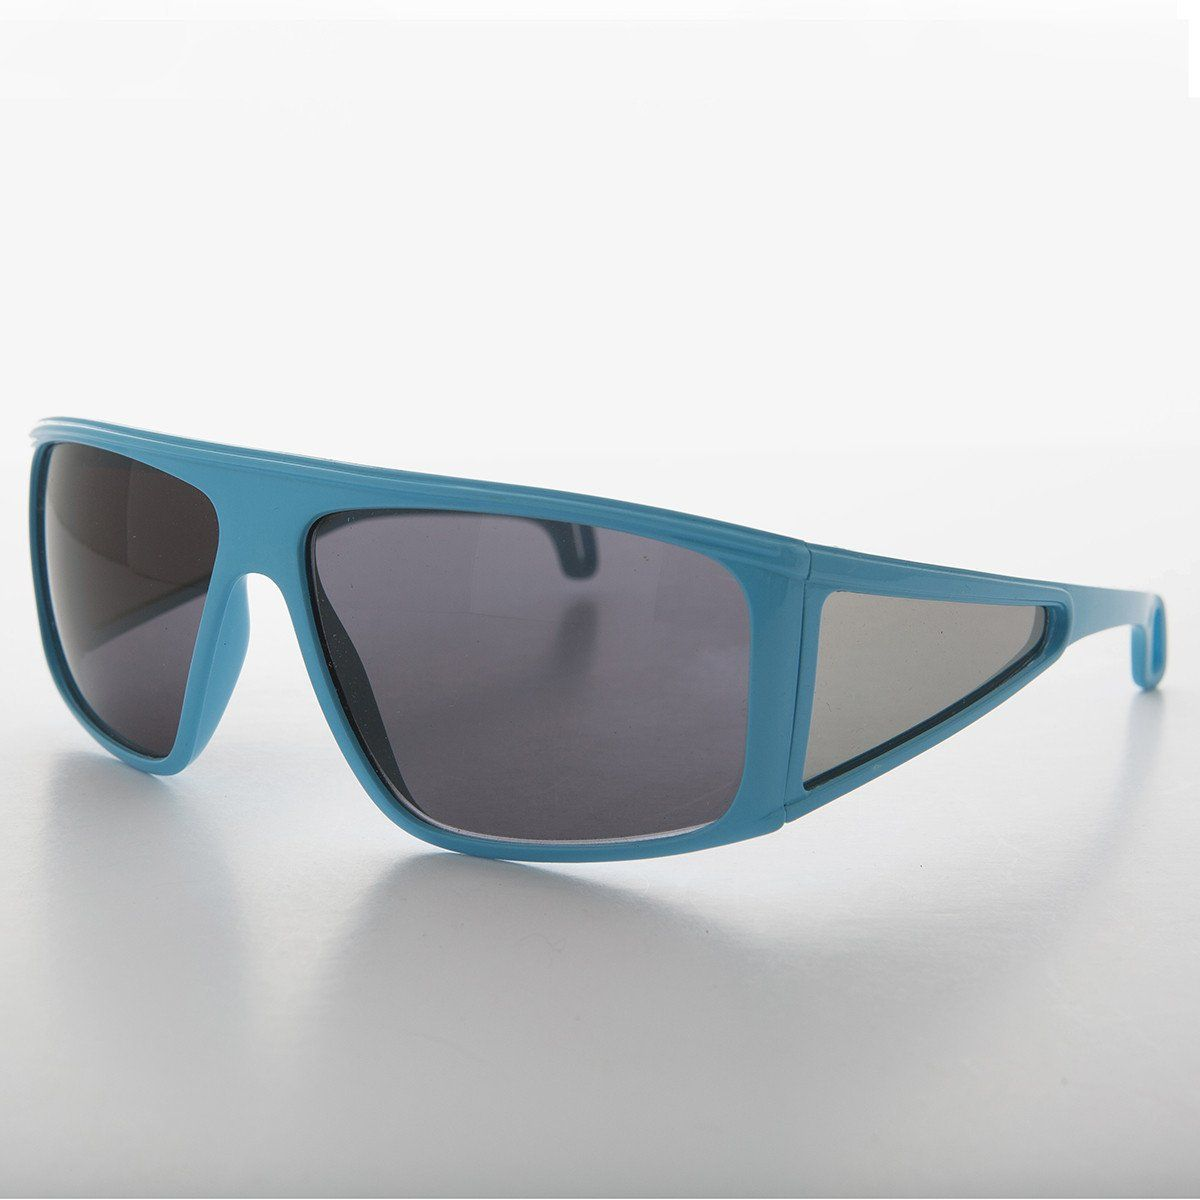 8b4f8086a91 80s Sporty Wrap Shield Vintage Sunglass with Side Lens Blinders Made In  France - Bijou